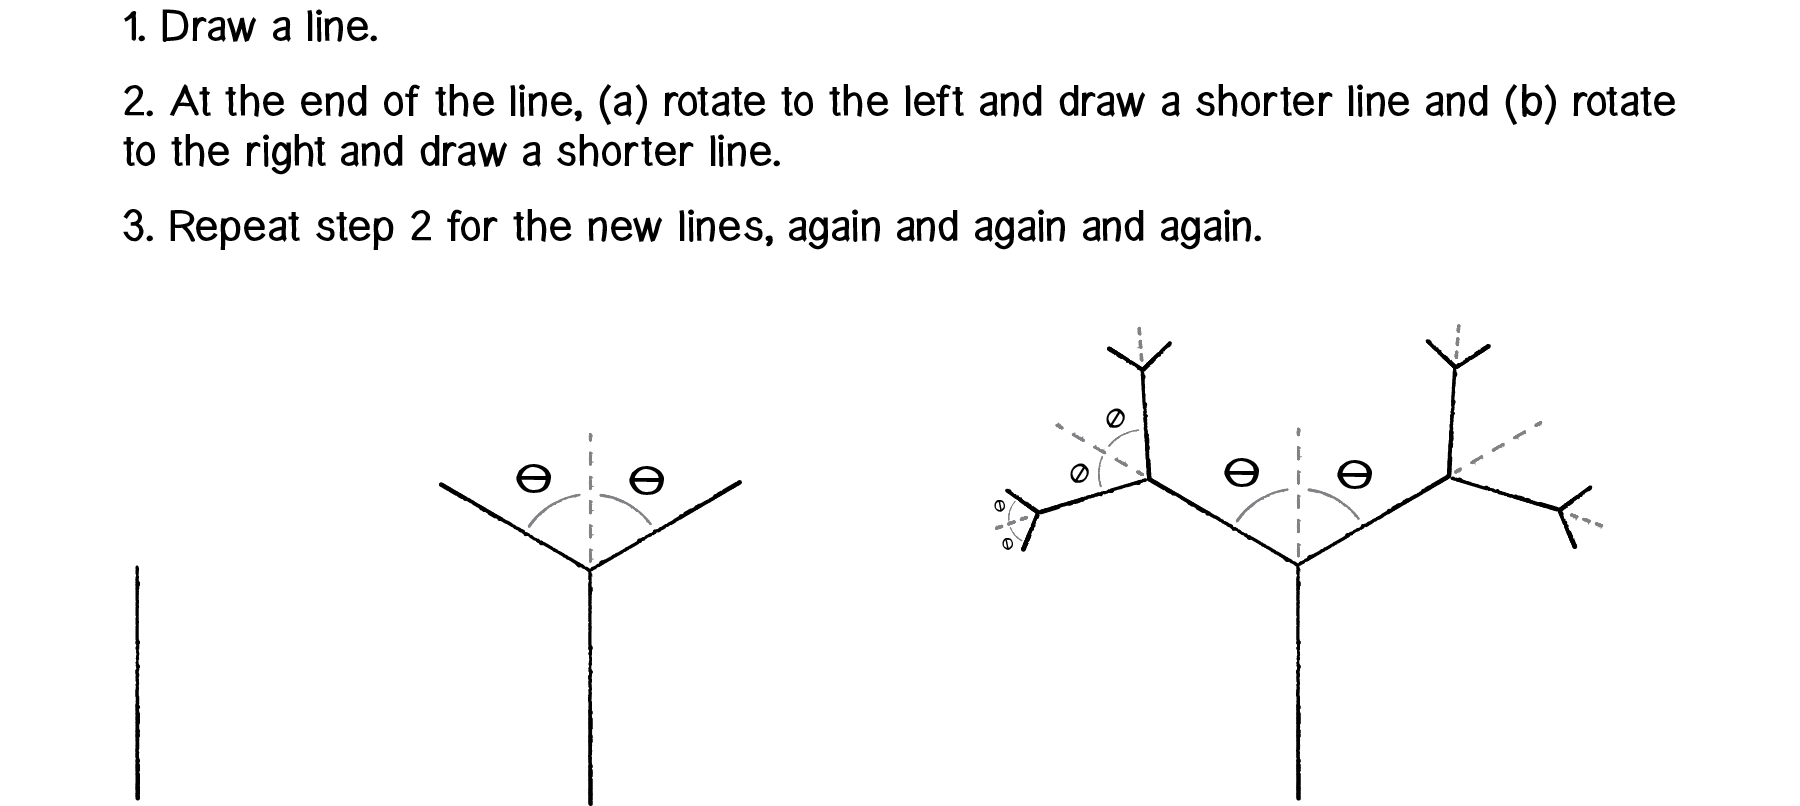 Breshman Line Drawing Algorithm Example : The nature of code